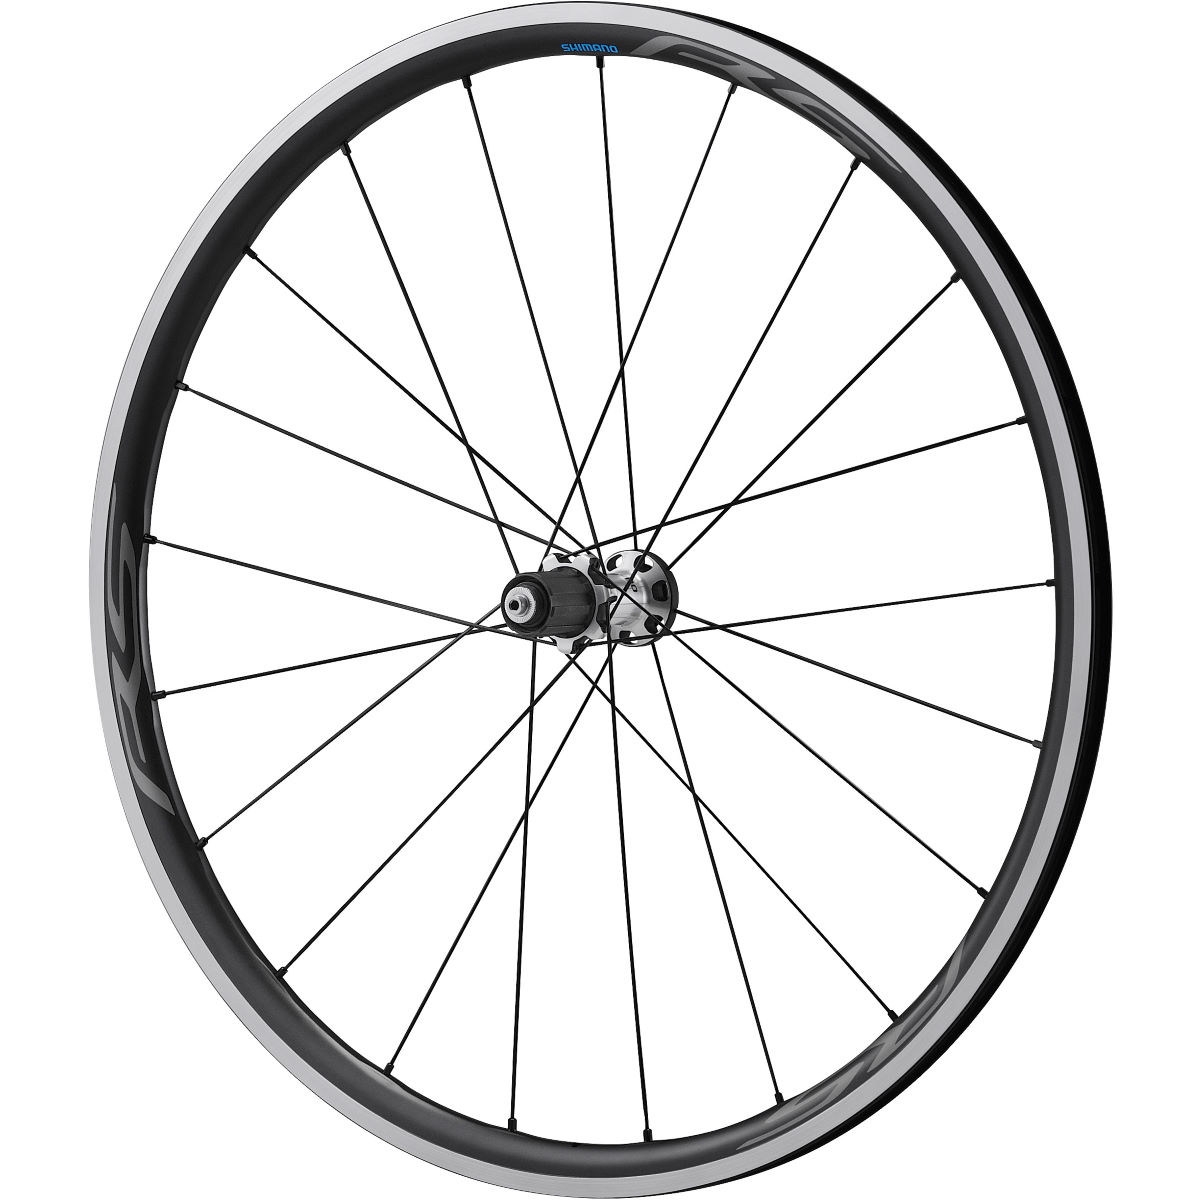 Shimano Ultegra RS700 C30 Clincher Rear Wheel   Back Wheels